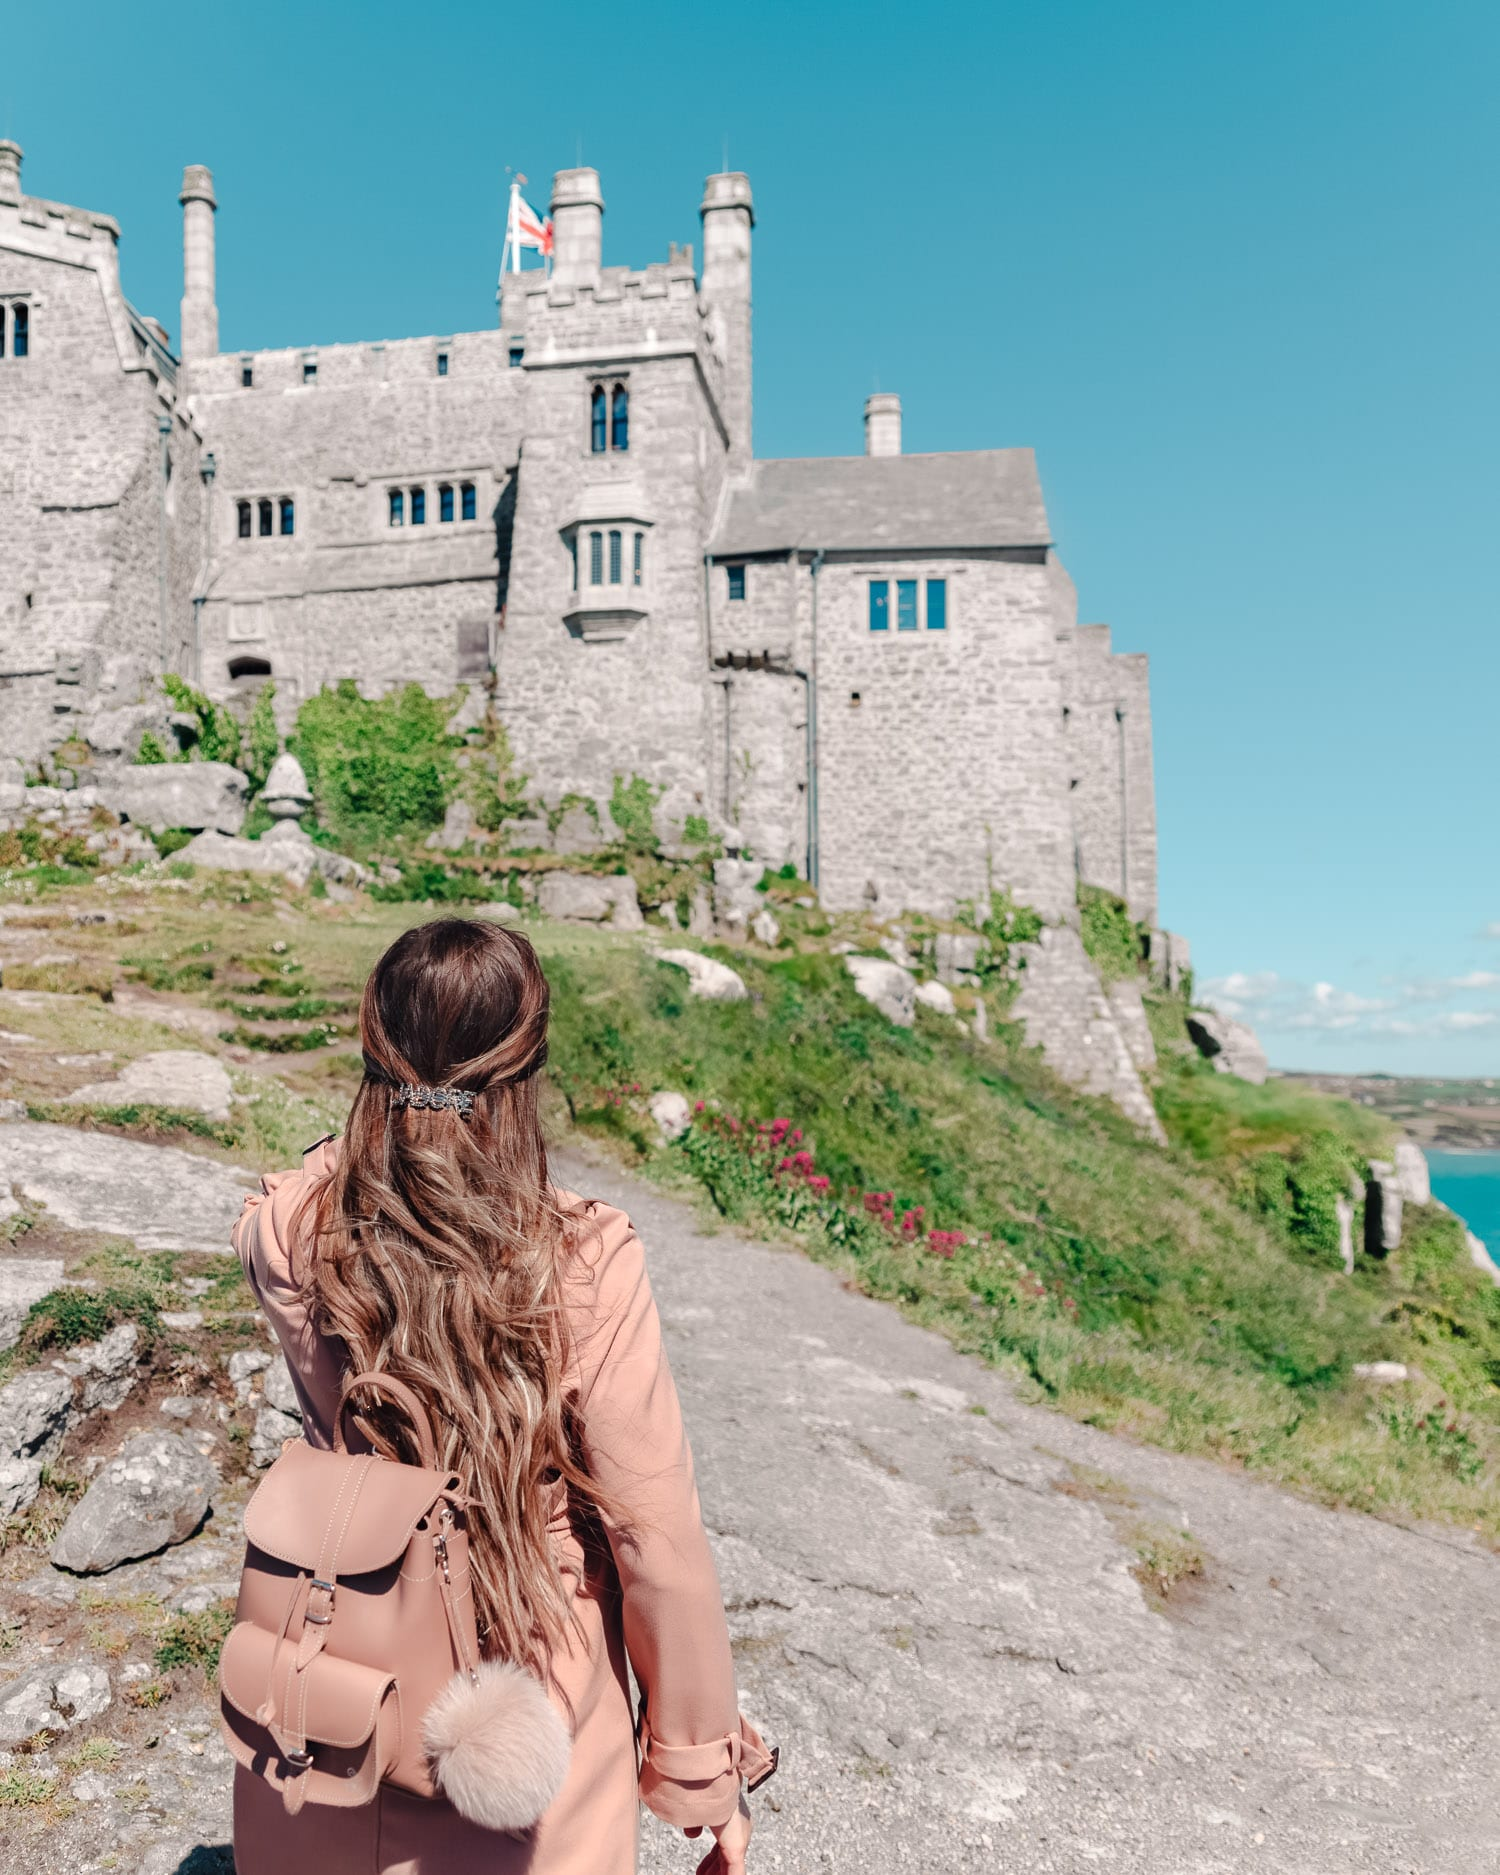 St. Michael's Mount | Castle in Cornwall, Great Britain